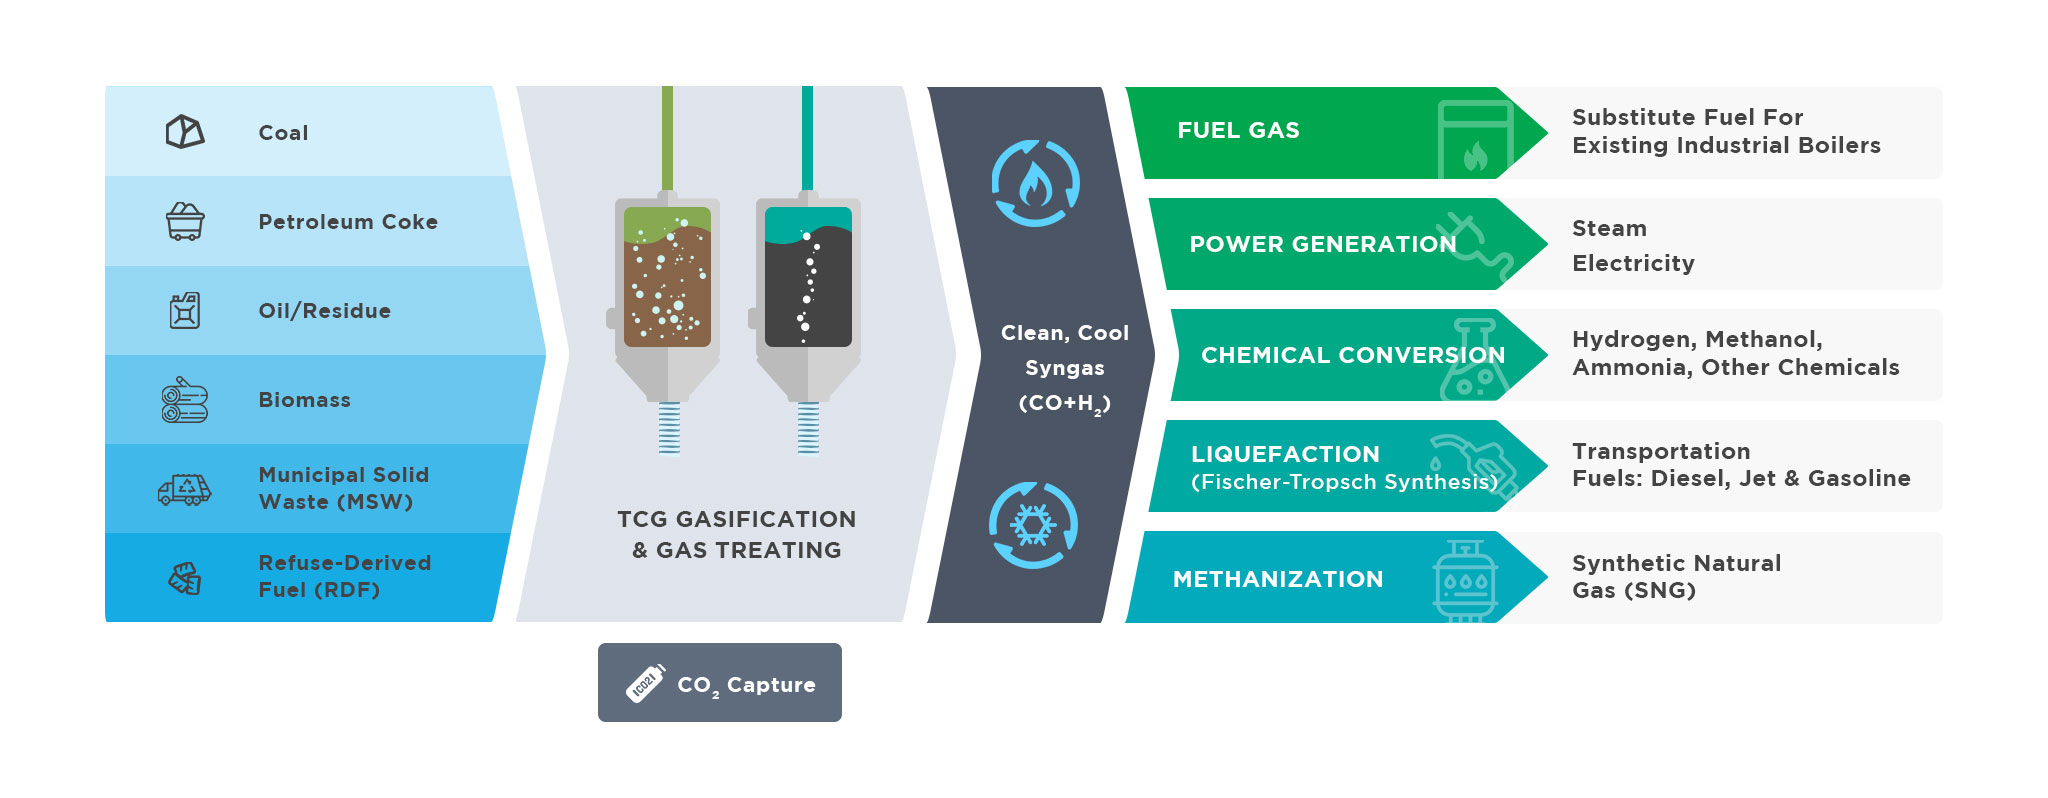 TCG Syngas Solution Illustration: conversion from various feedstocks to multiple energy options.